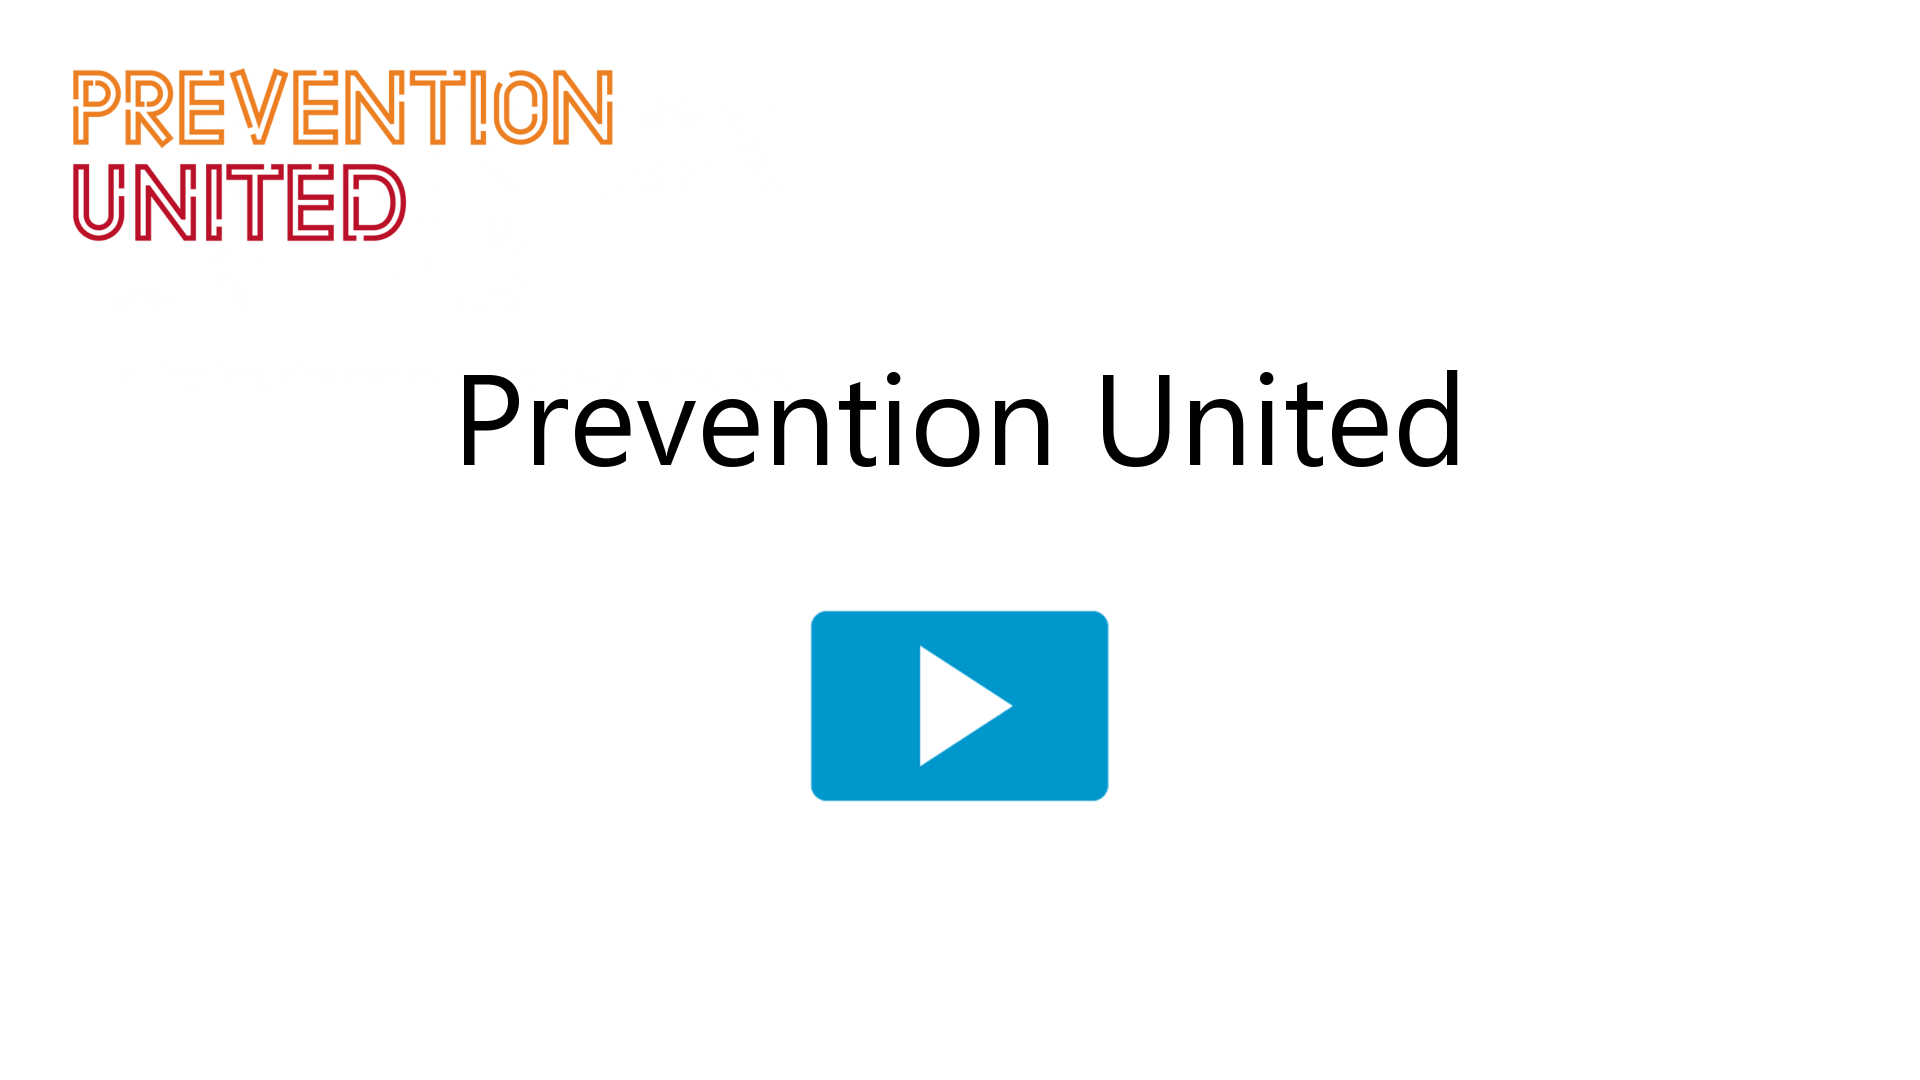 More about Prevention United